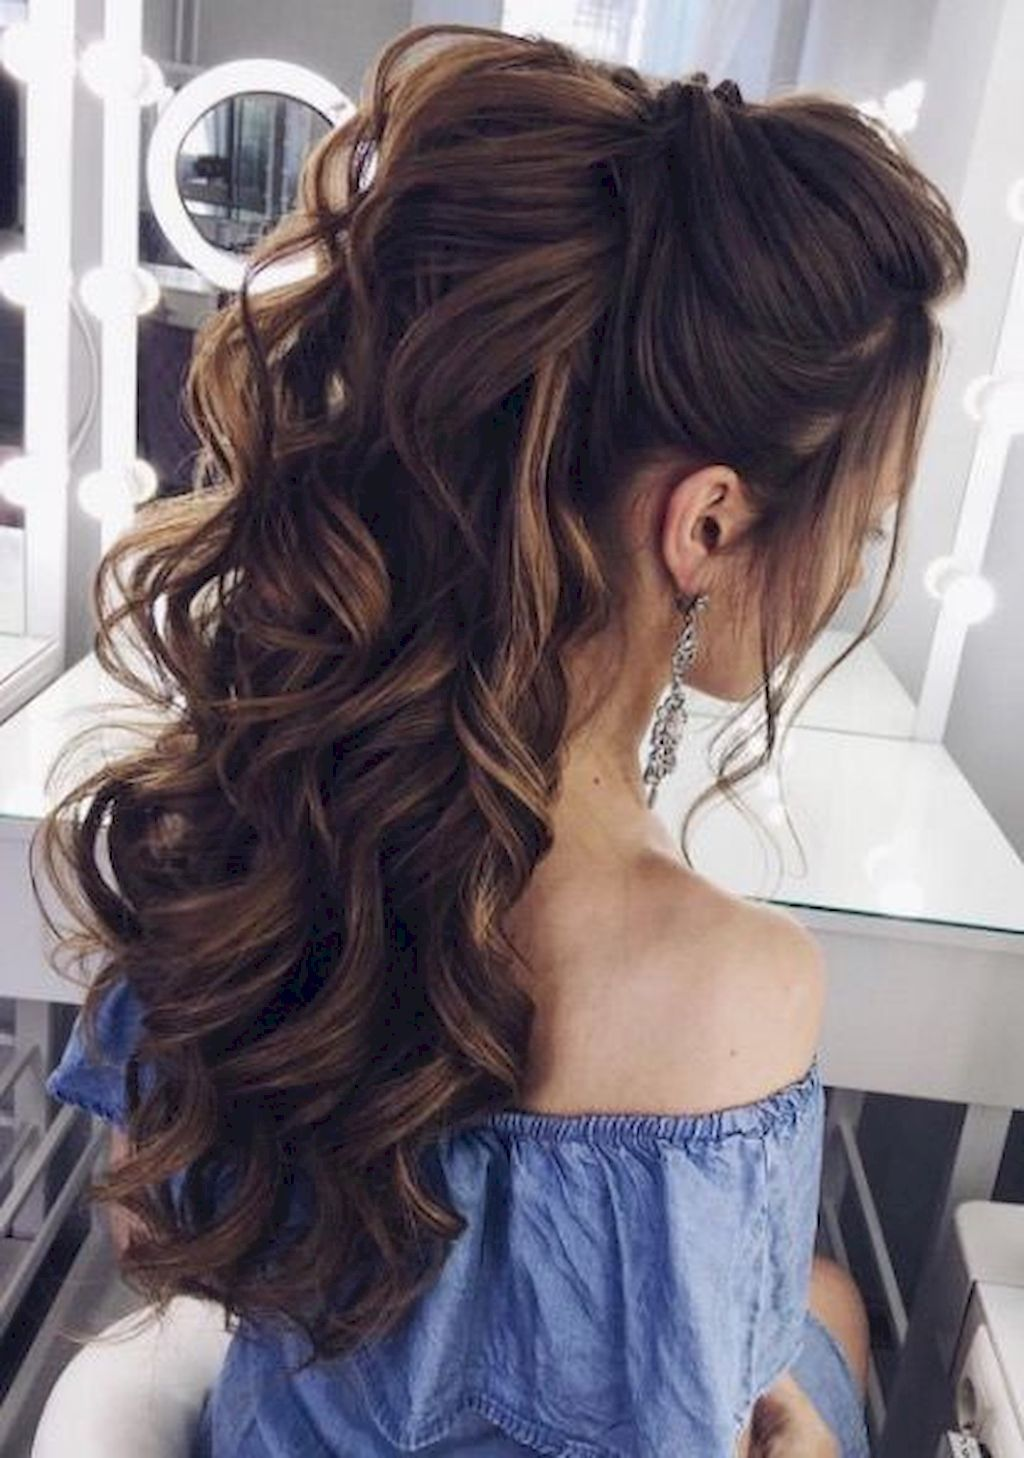 96 Bridal Wedding Hairstyles For Long Hair that will Inspire | Hair ...